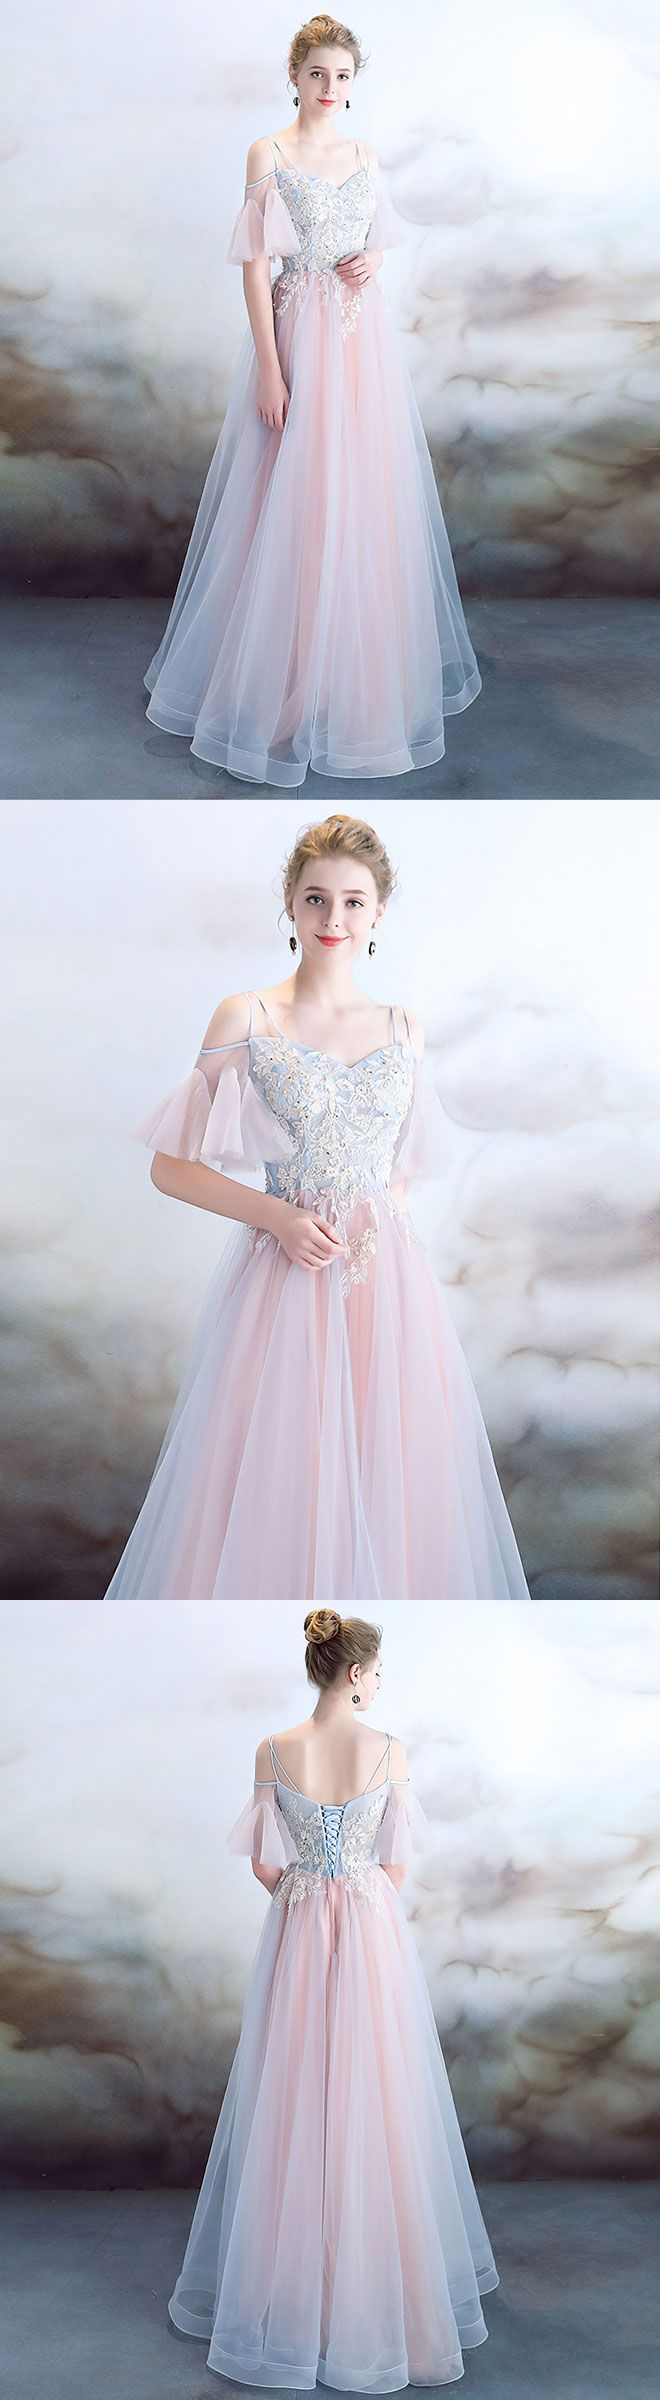 Elegant light pink tulle long prom dress pink evening dress in